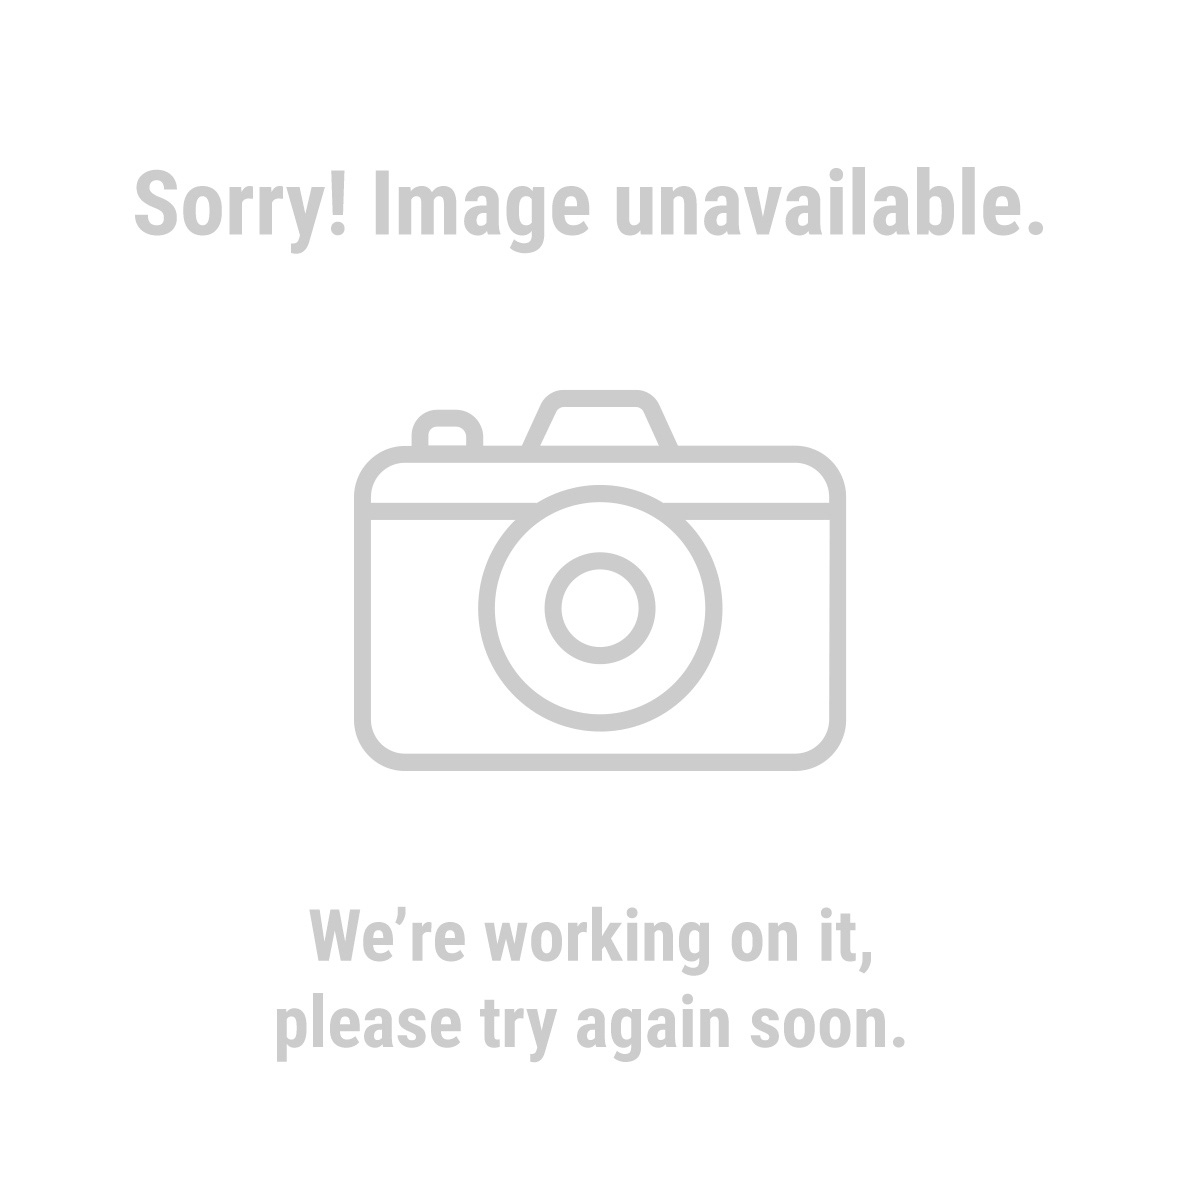 Storehouse 67519 88 Piece Heat Shrink Tubing Assortment with Case